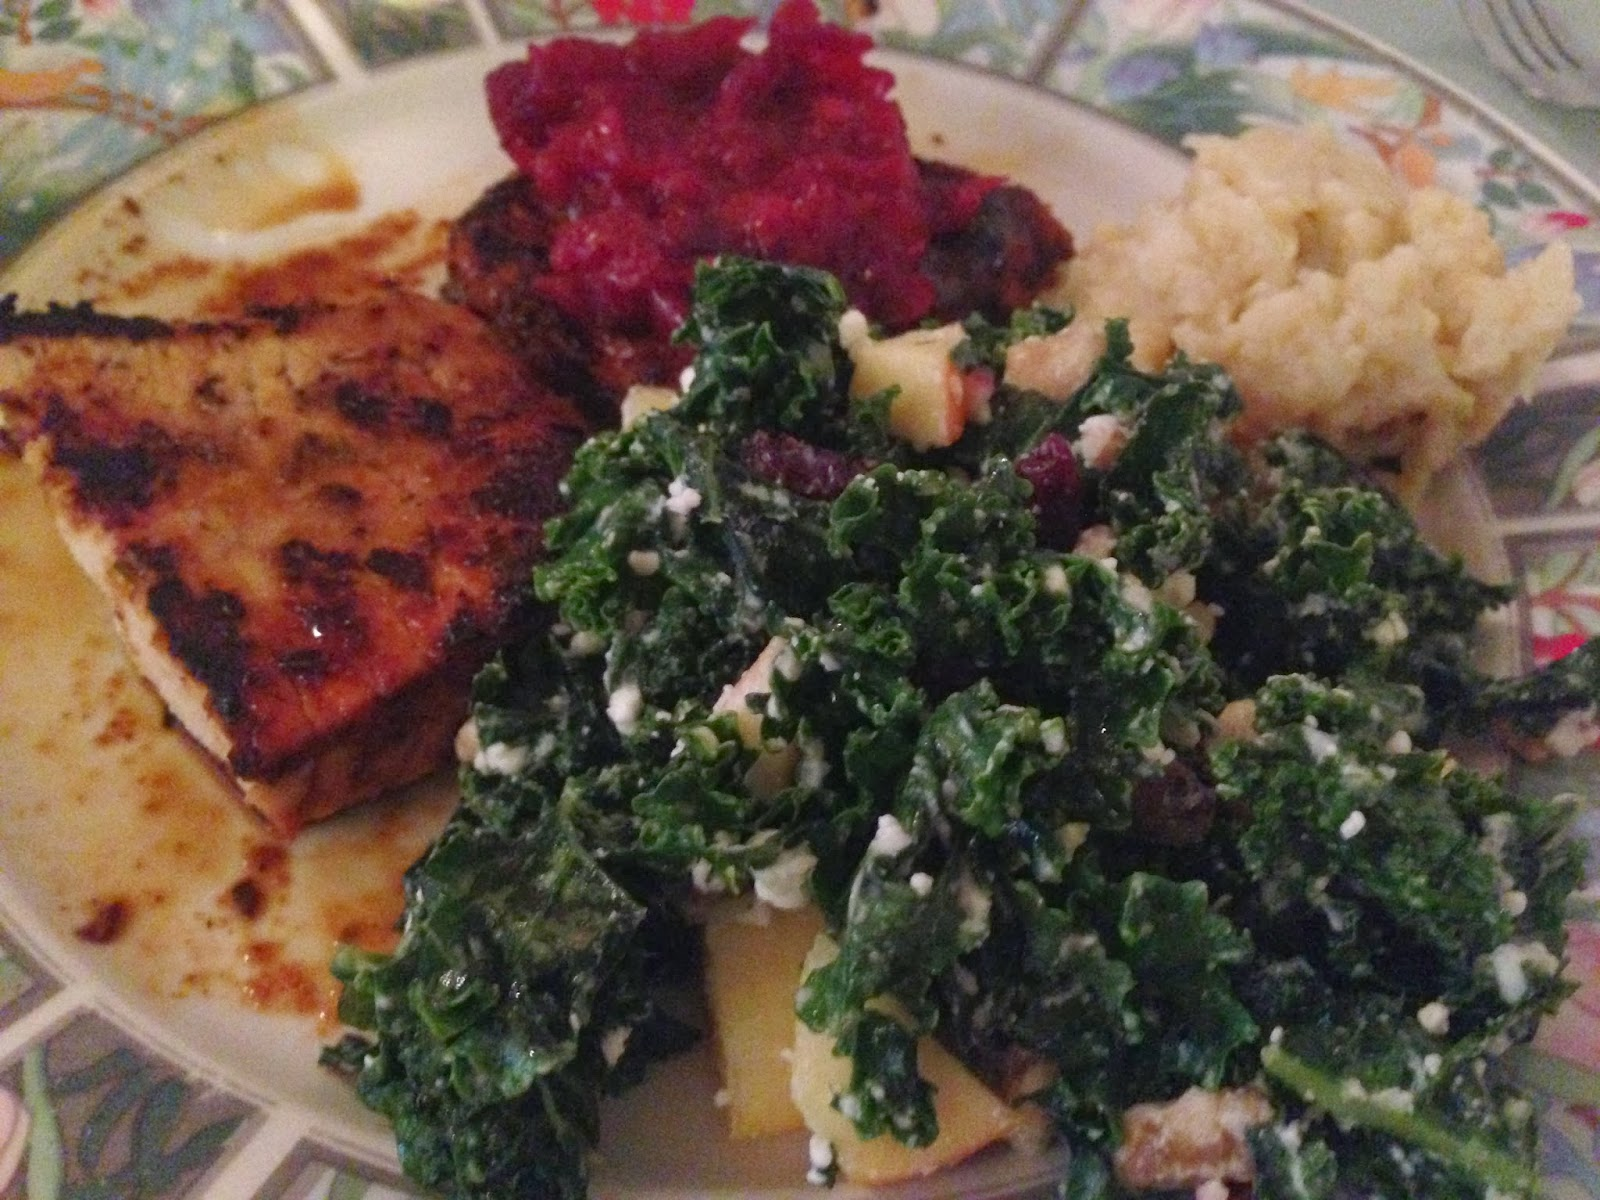 ... cheese mashed potatoes with goat cheese kale food republic goat cheese